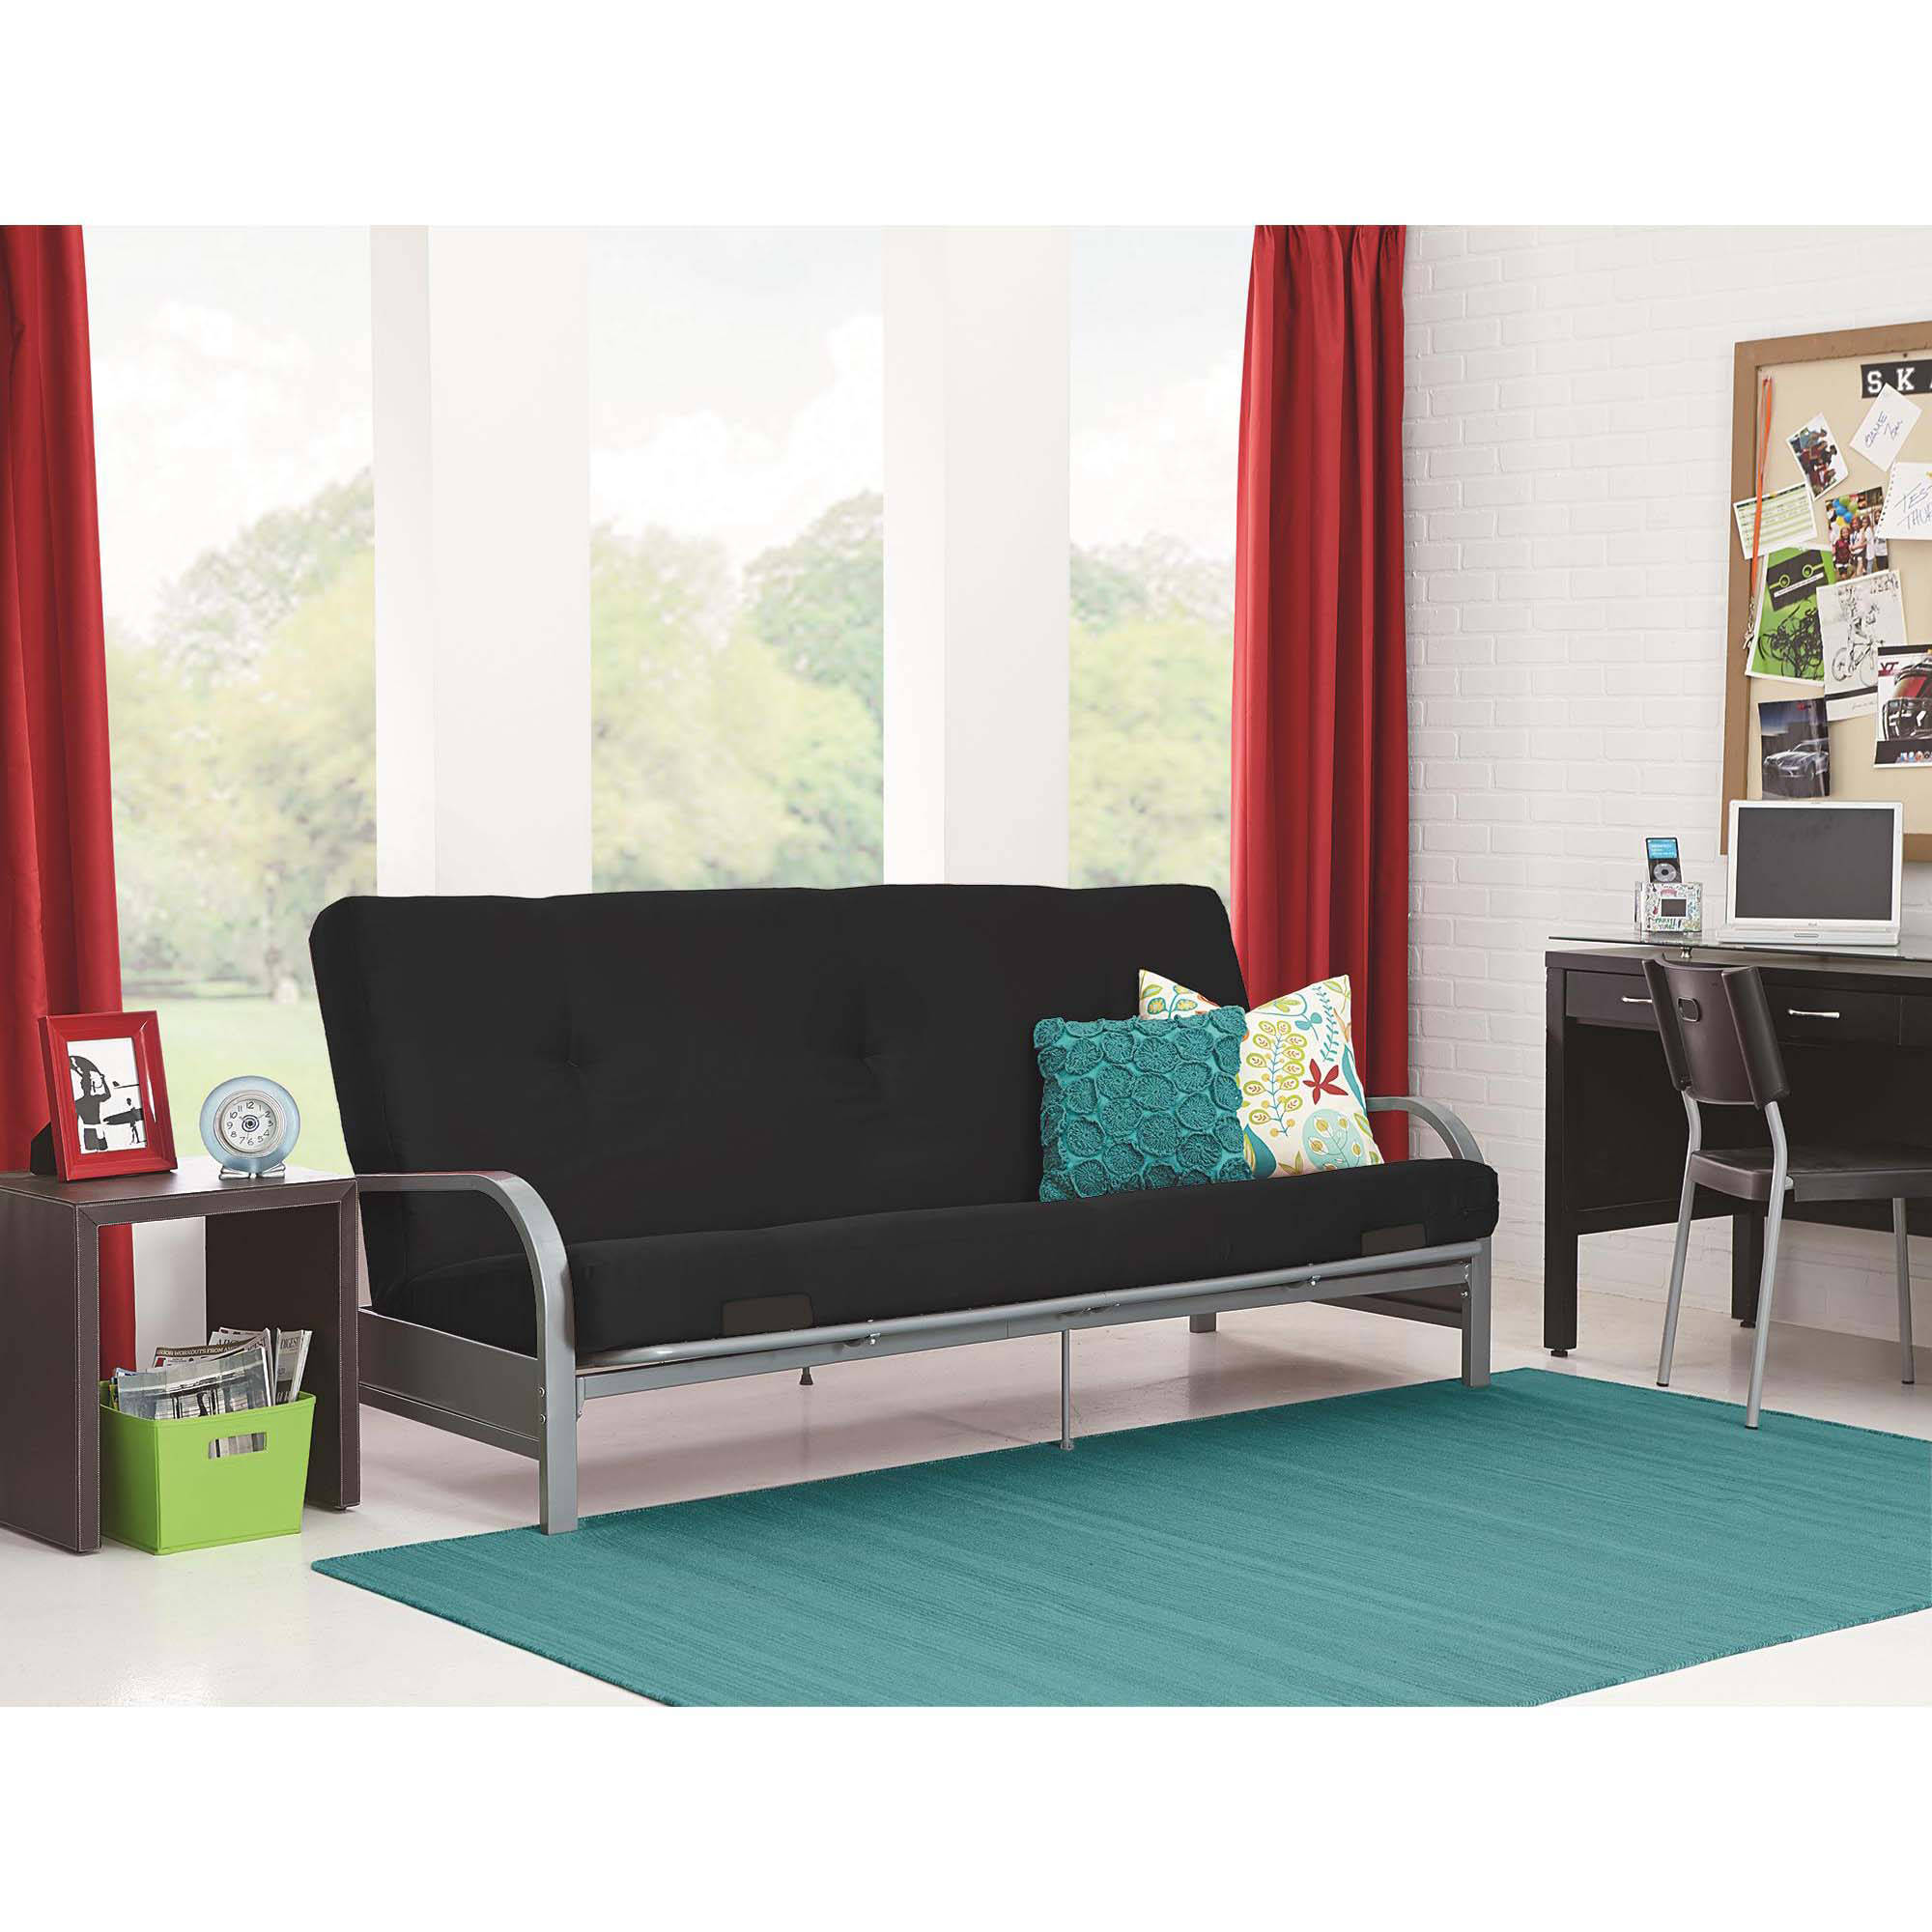 """Mainstays Silver Metal Arm Futon Frame with 6"""" Mattress, Multiple Colors"""